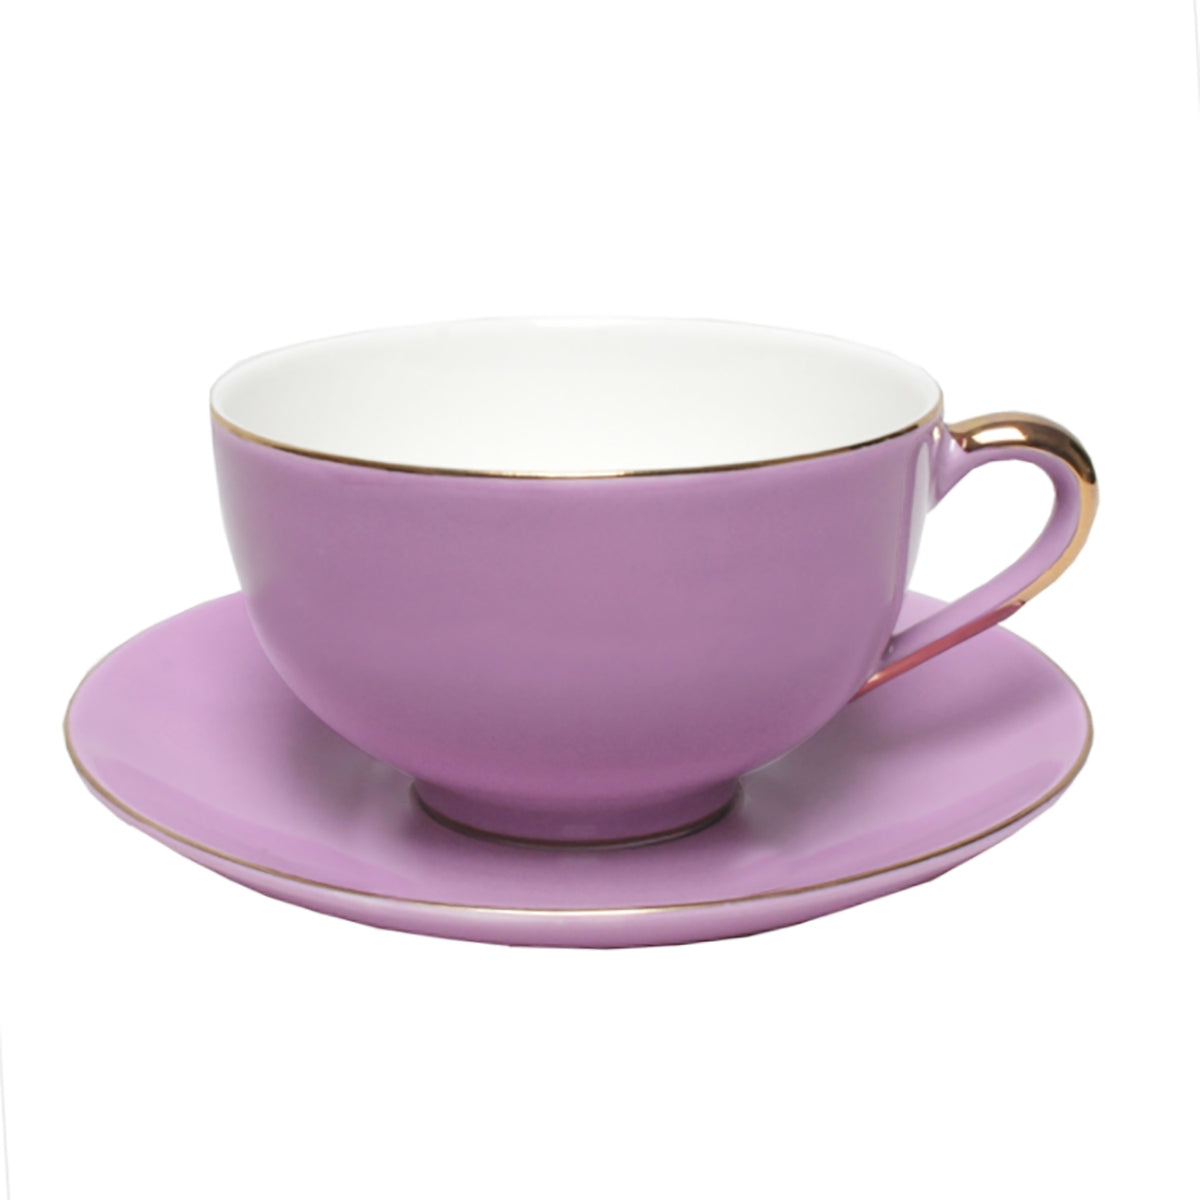 VINTAGE ROYALE CUP AND SAUCER SET OF TWO | VIOLET